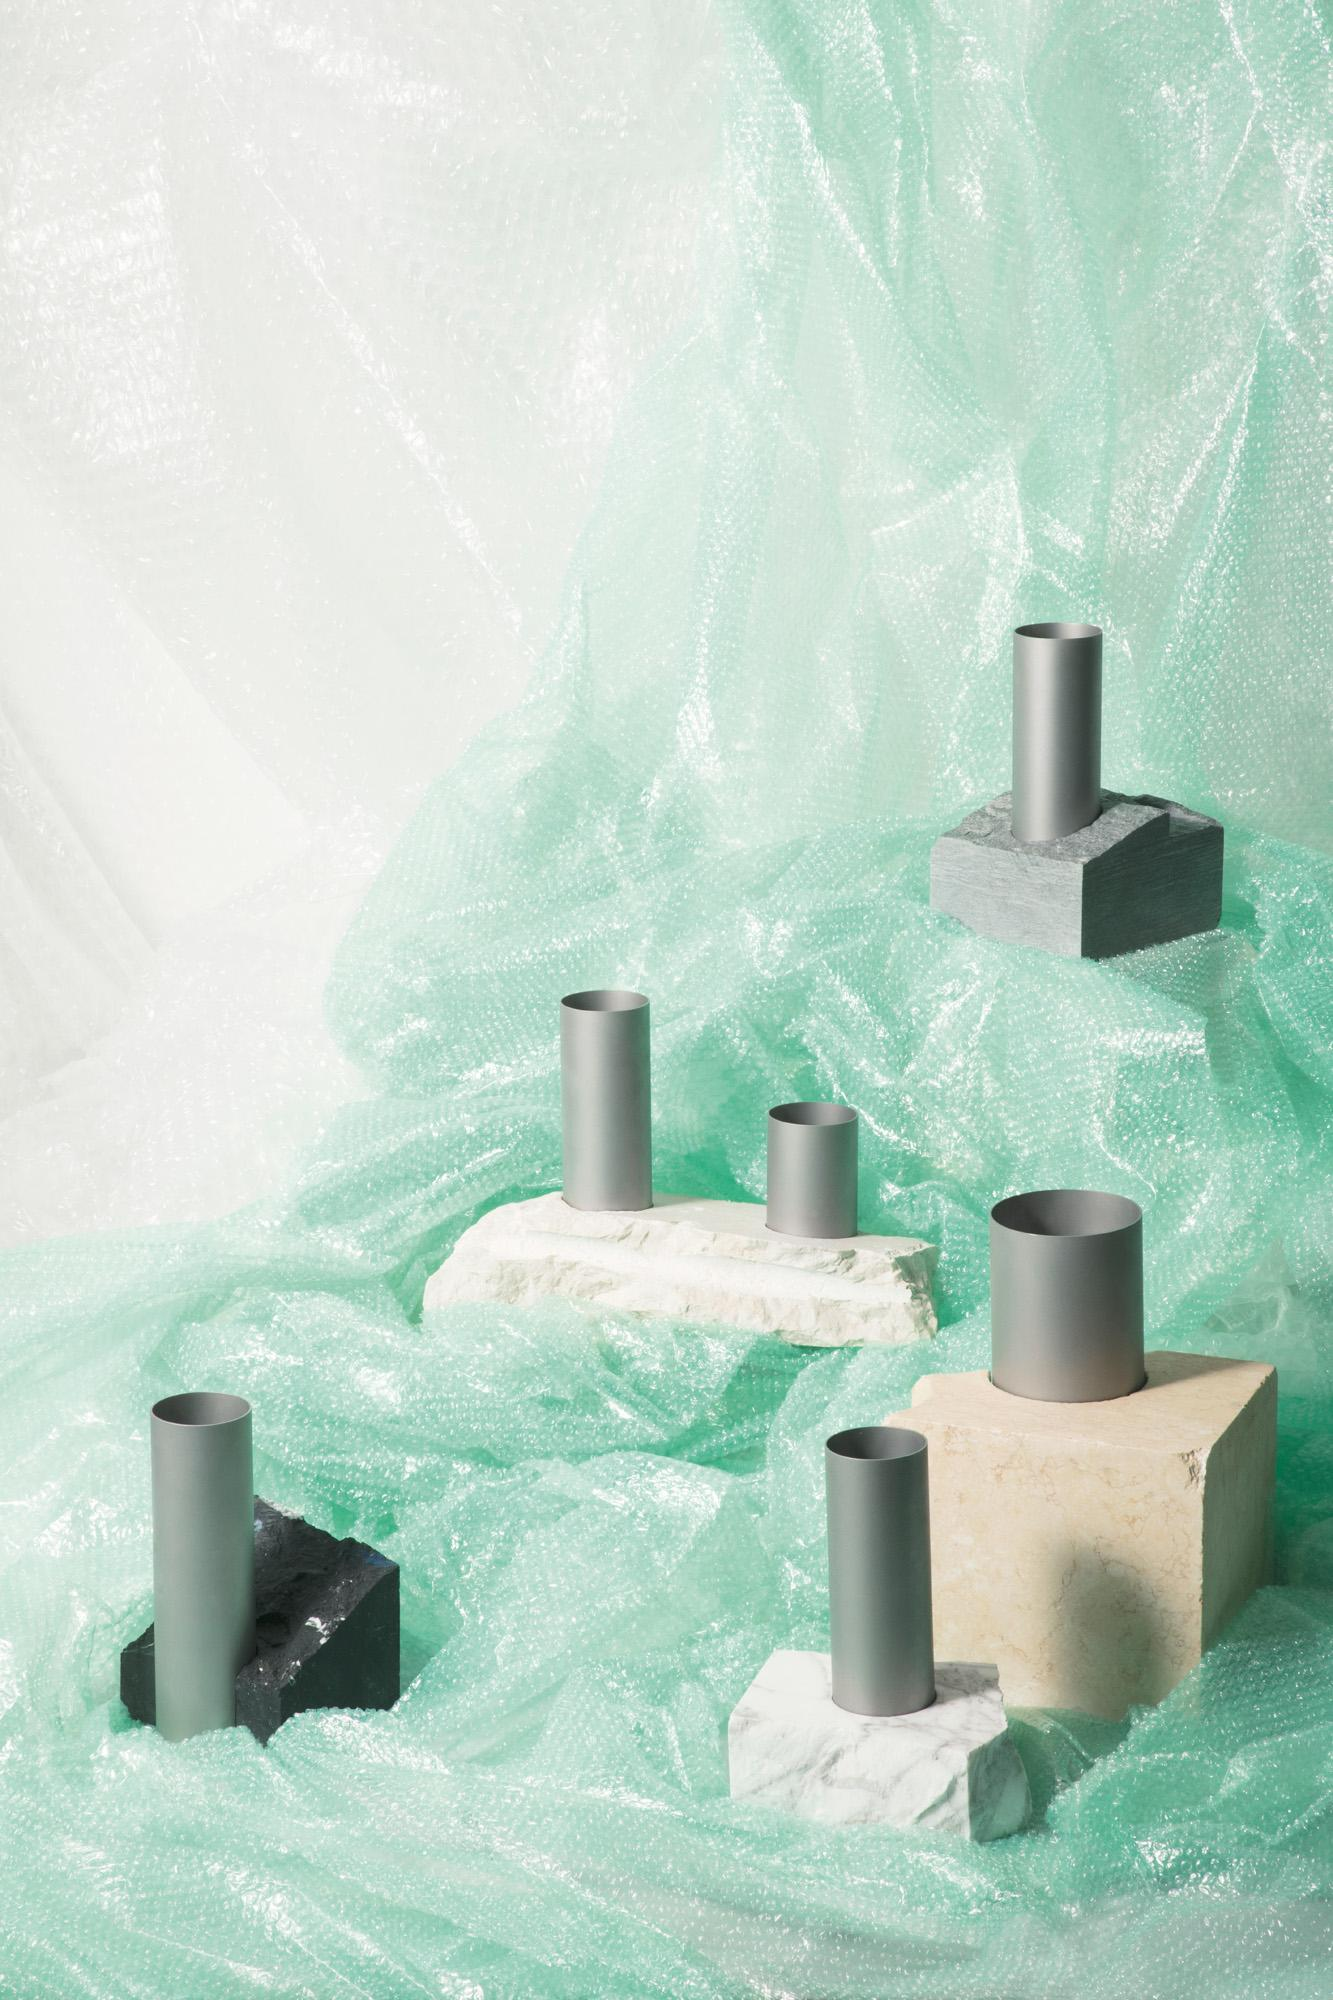 Vases by Tableau Copenhagen andBloc Studios featuring marble bases and tube aluminium tops, shown on teal bubble wrap